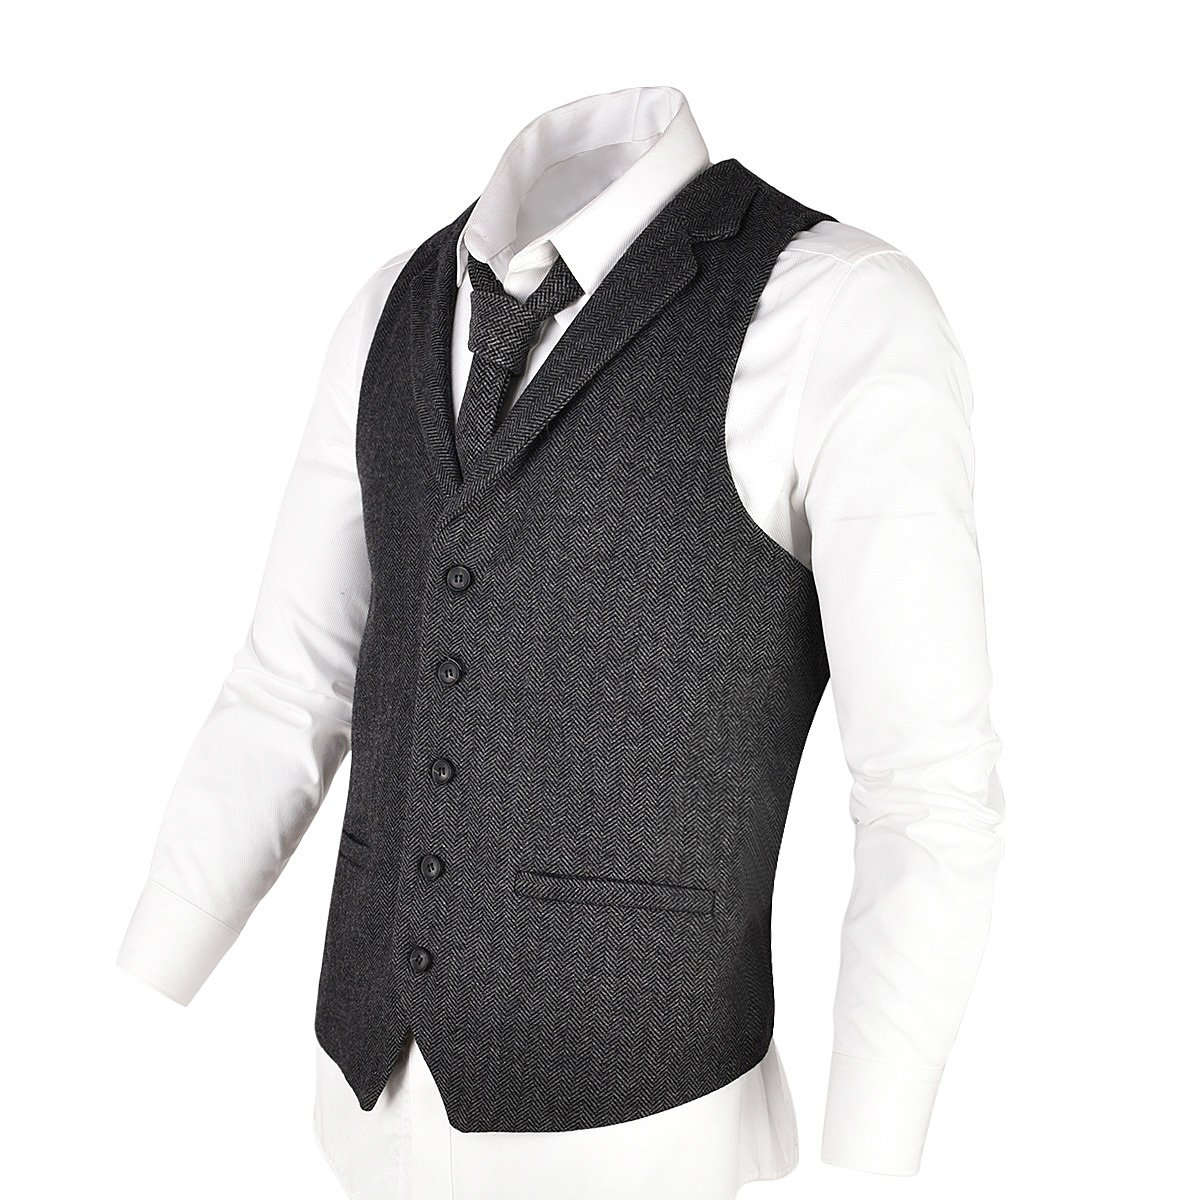 1920s Style Mens Vests VOBOOM Mens Herringbone Tailored Collar Waistcoat Fullback Wool Tweed Suit Vest $39.99 AT vintagedancer.com